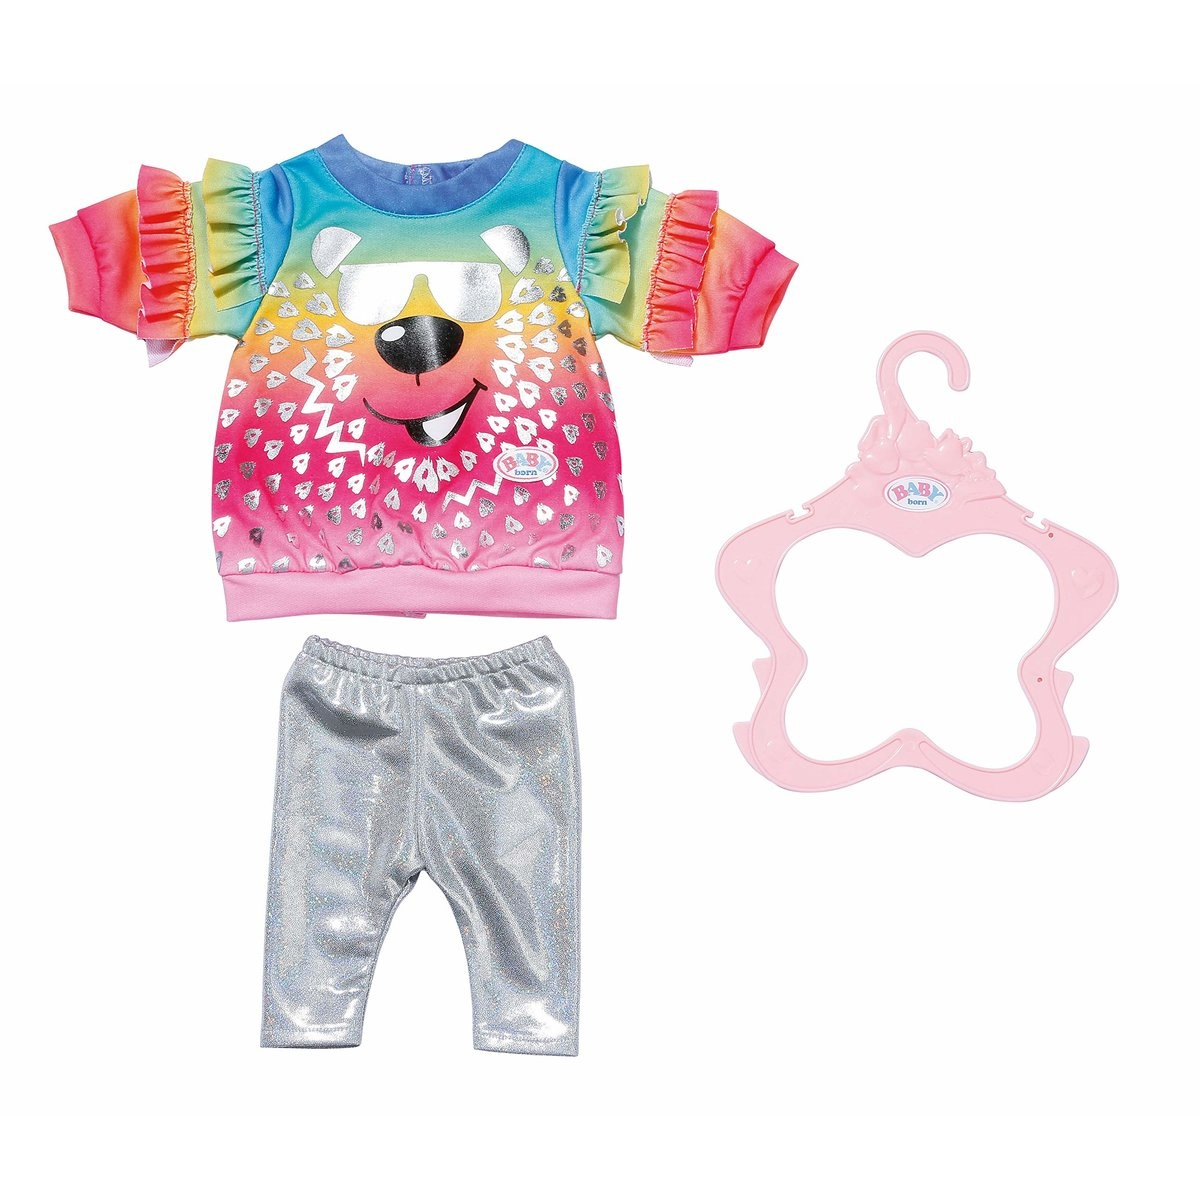 Zapf Creation Baby Born Sweater Outfit 43 cm